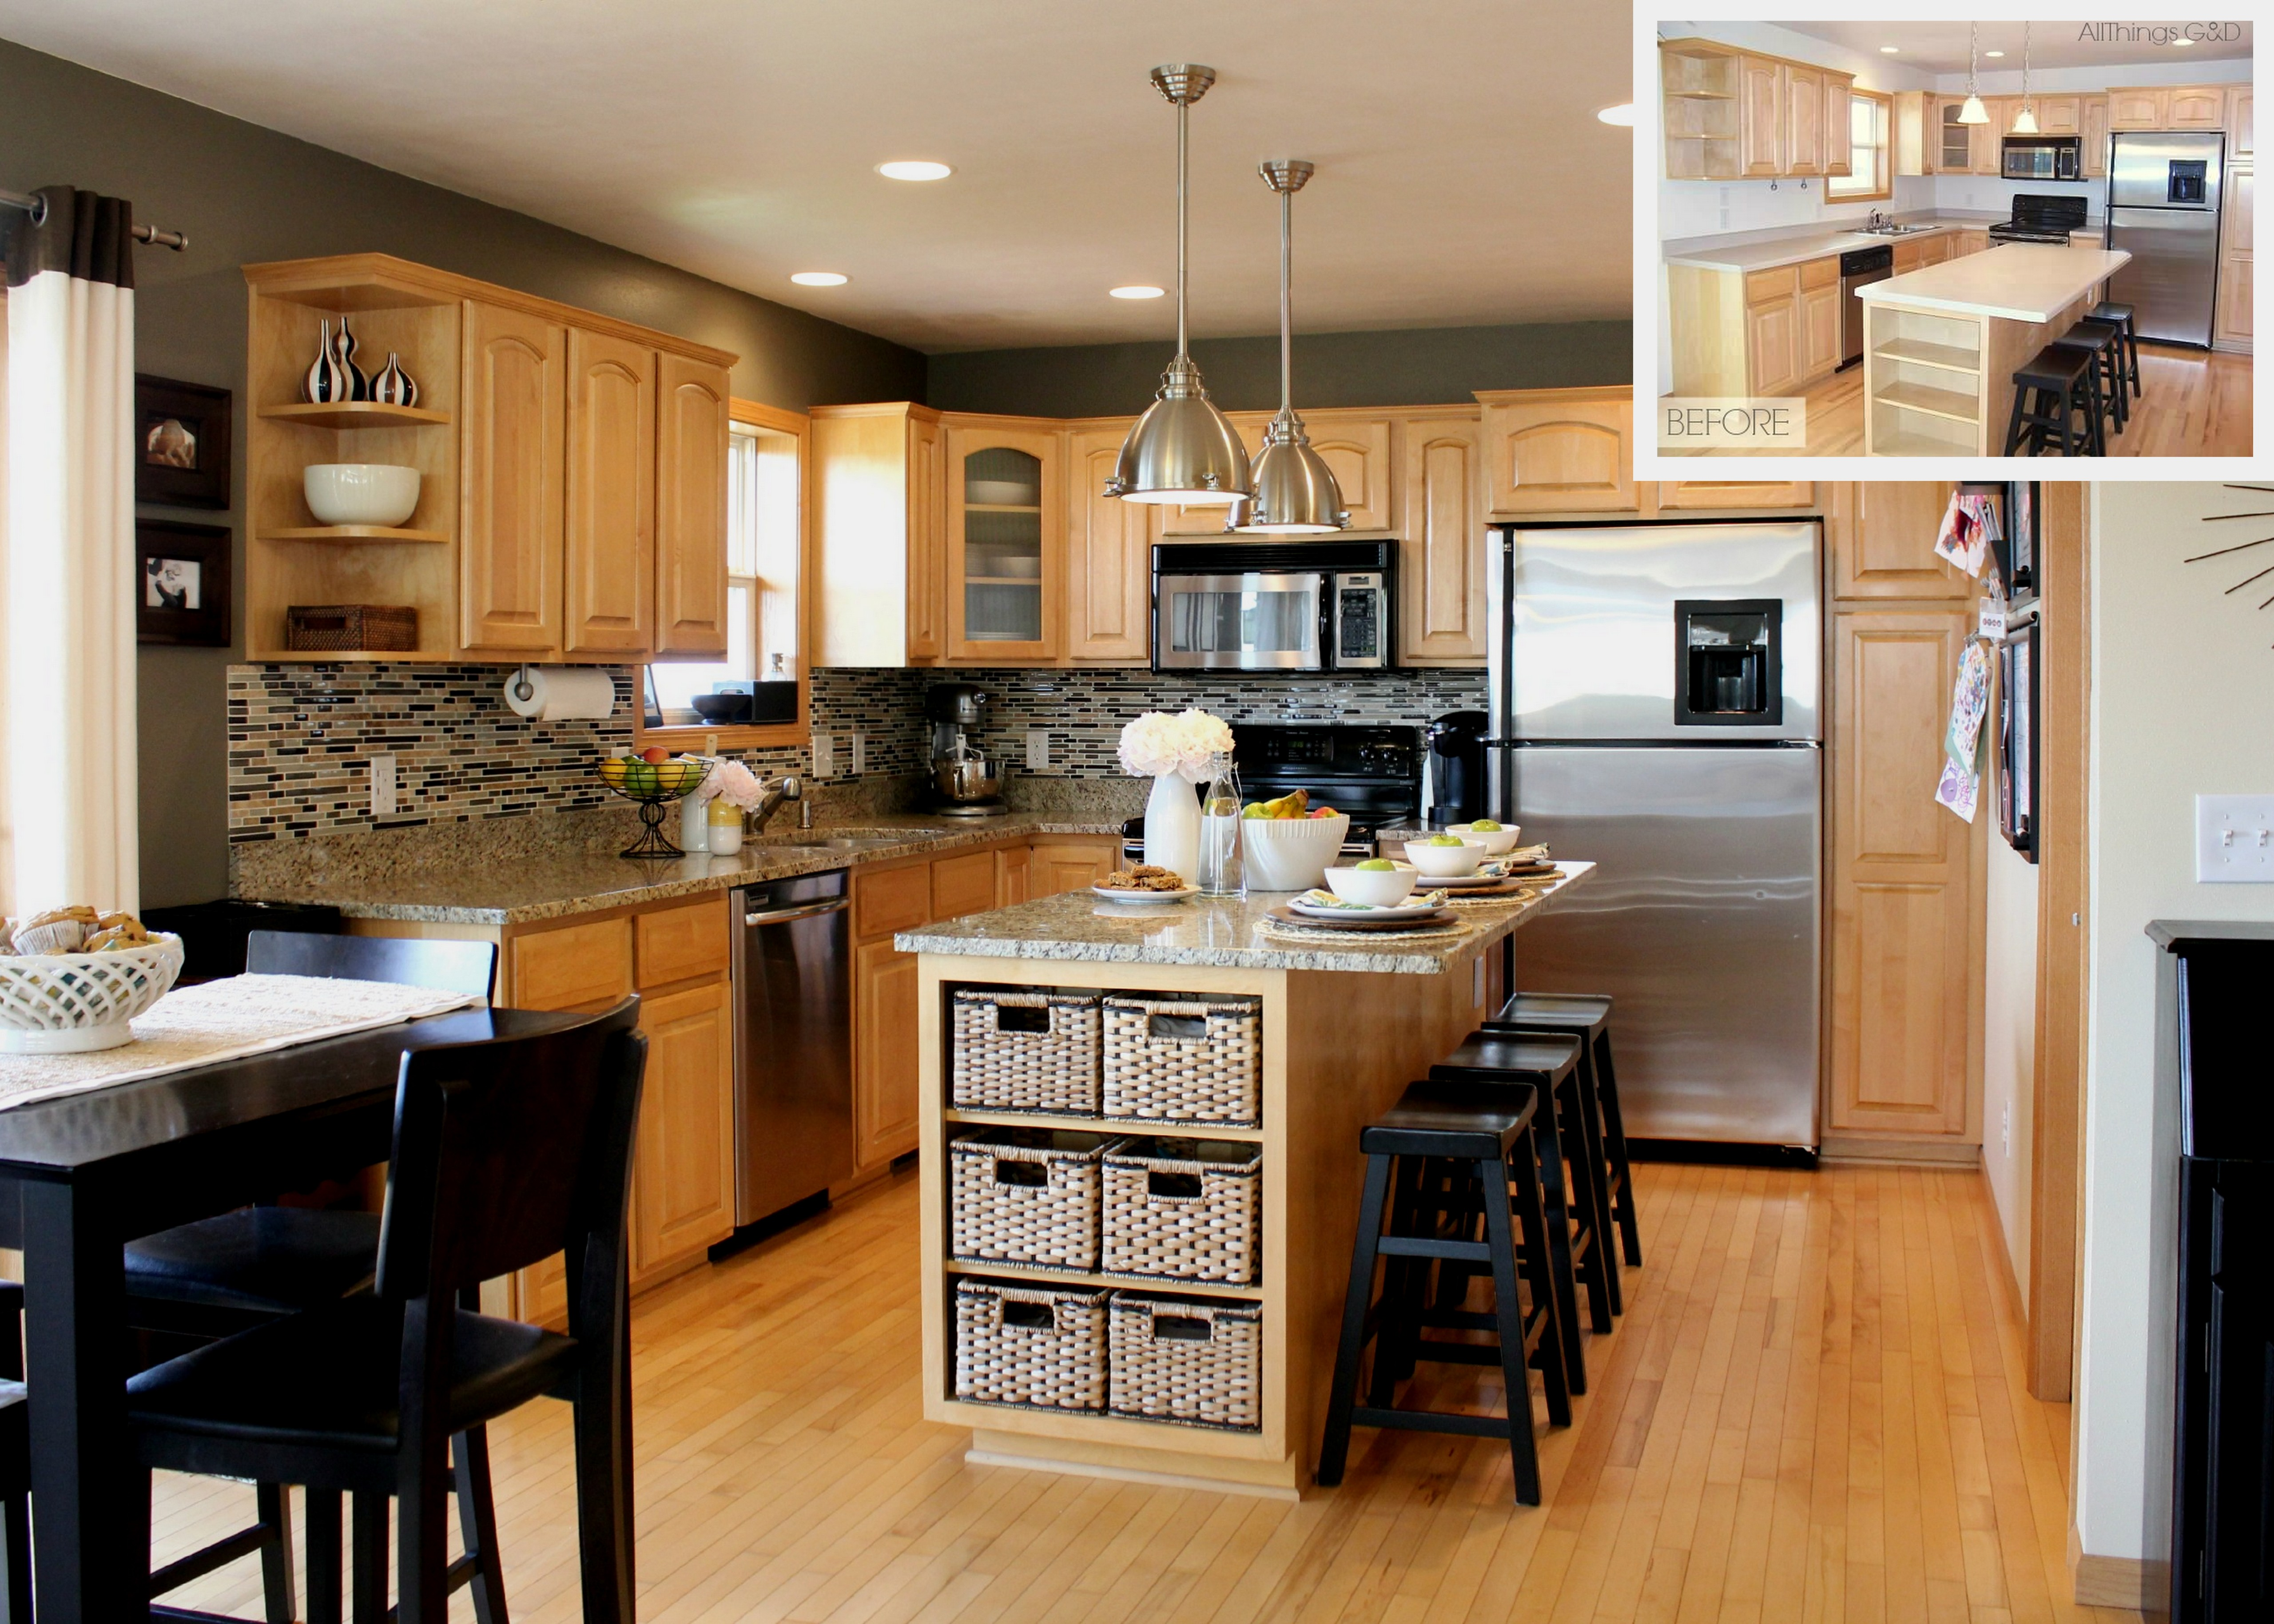 going gray gray kitchen kitchens with maple cabinets gray kitchen Sherwin Williams Anonymous paint color DIY tile backsplash maple kitchen cabinets